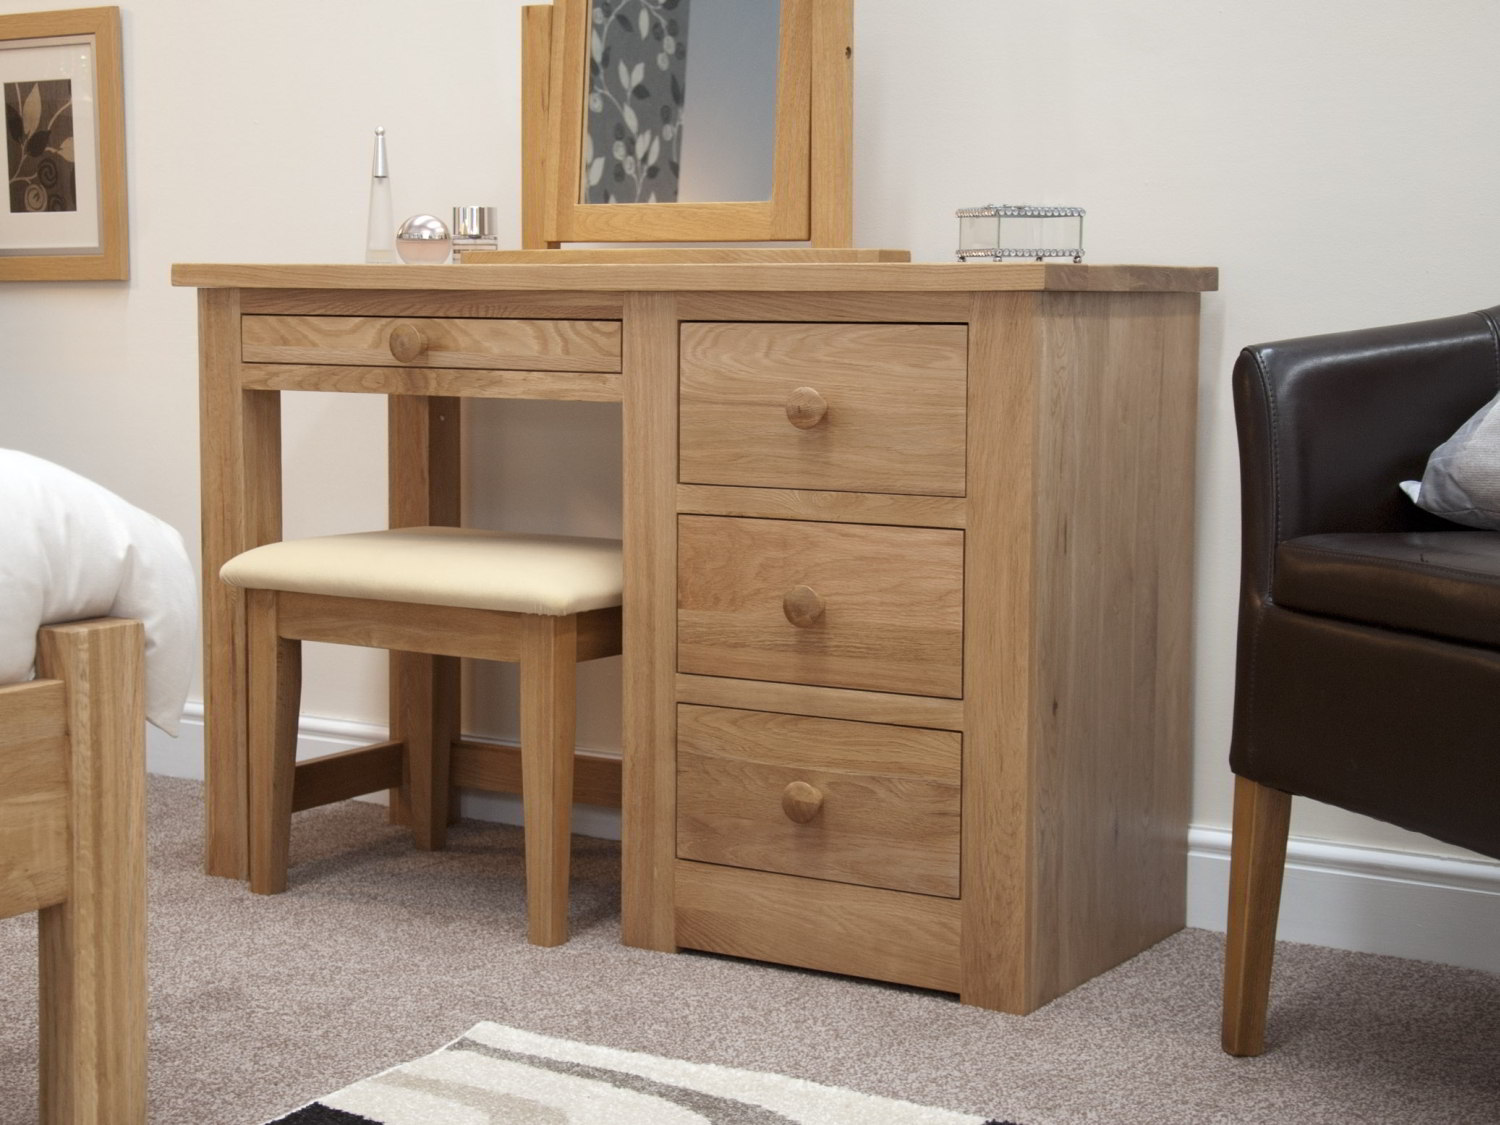 Bedroom furniture dressing table - Kingston Solid Modern Oak Bedroom Furniture Dressing Table With Stool